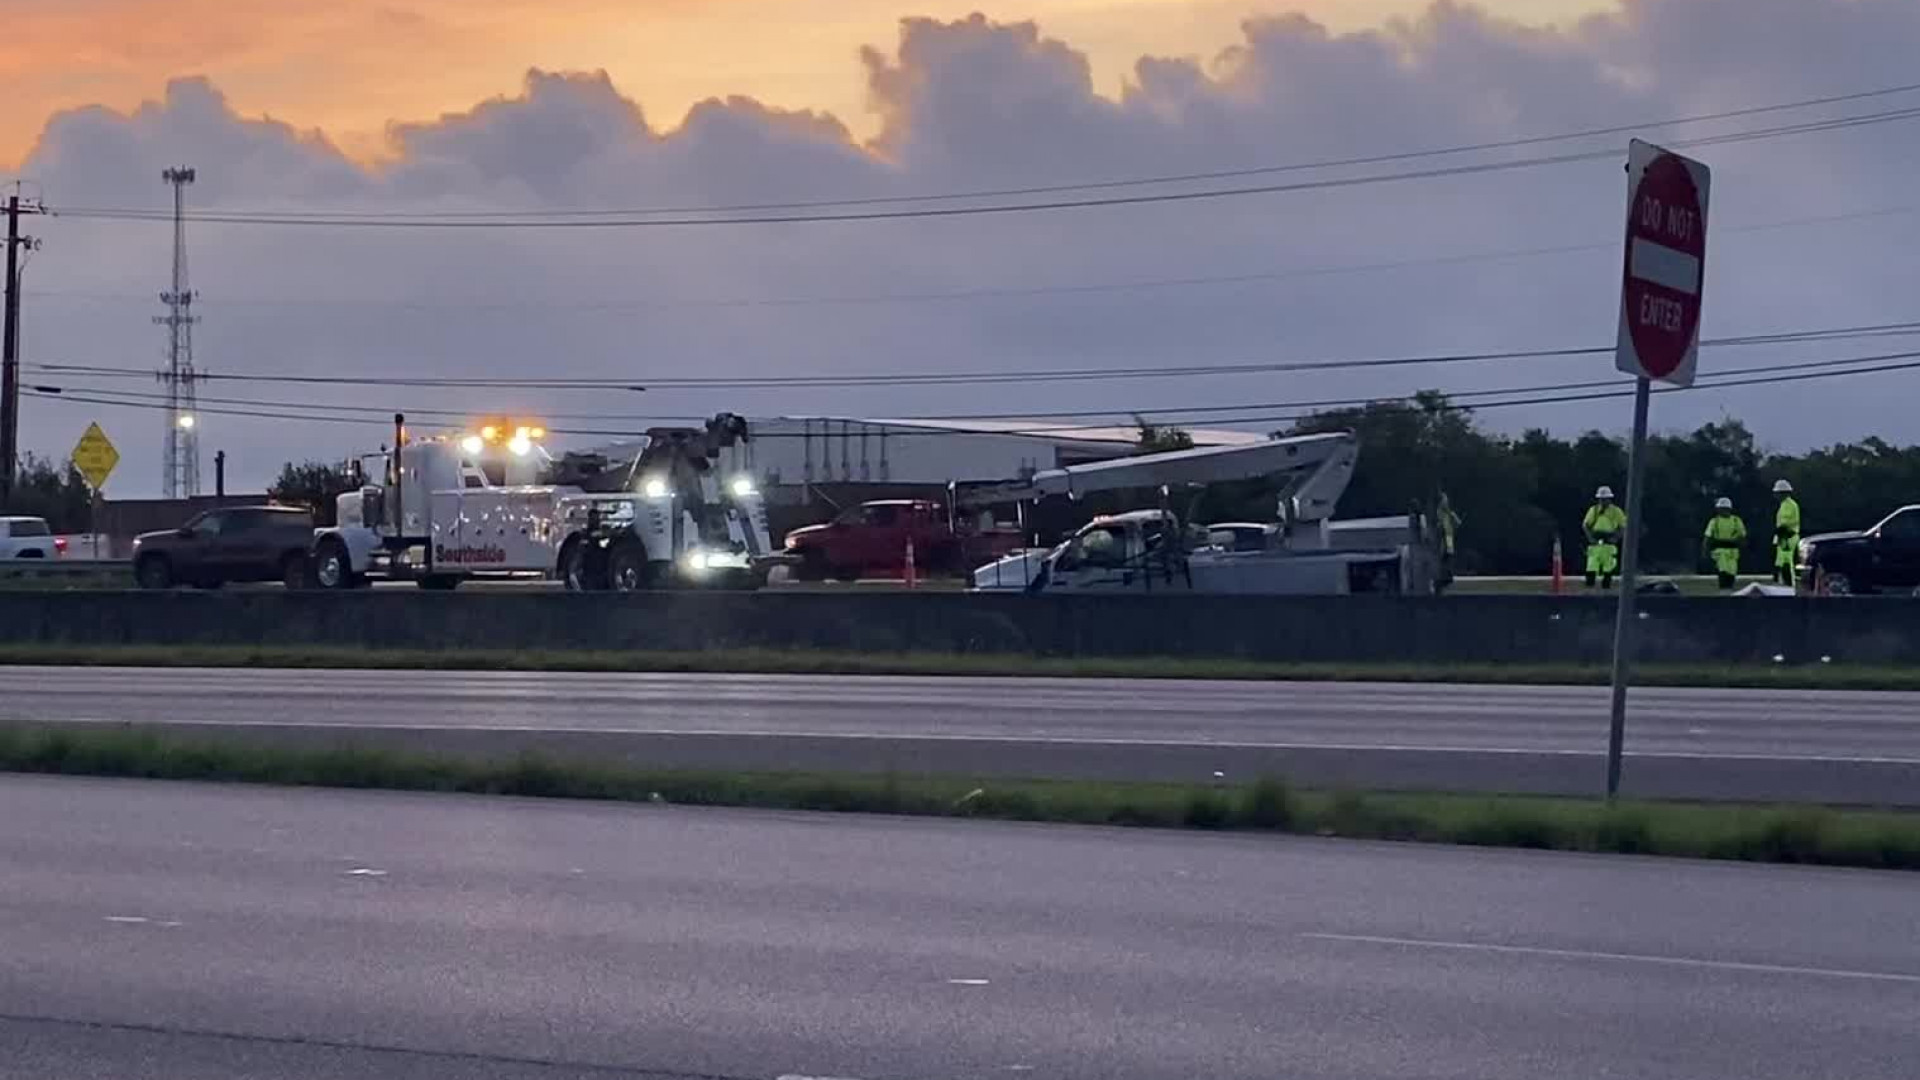 A crash on northbound I-35 shut down lanes of traffic early Friday morning. (KXAN photo/Nabil Remadna)